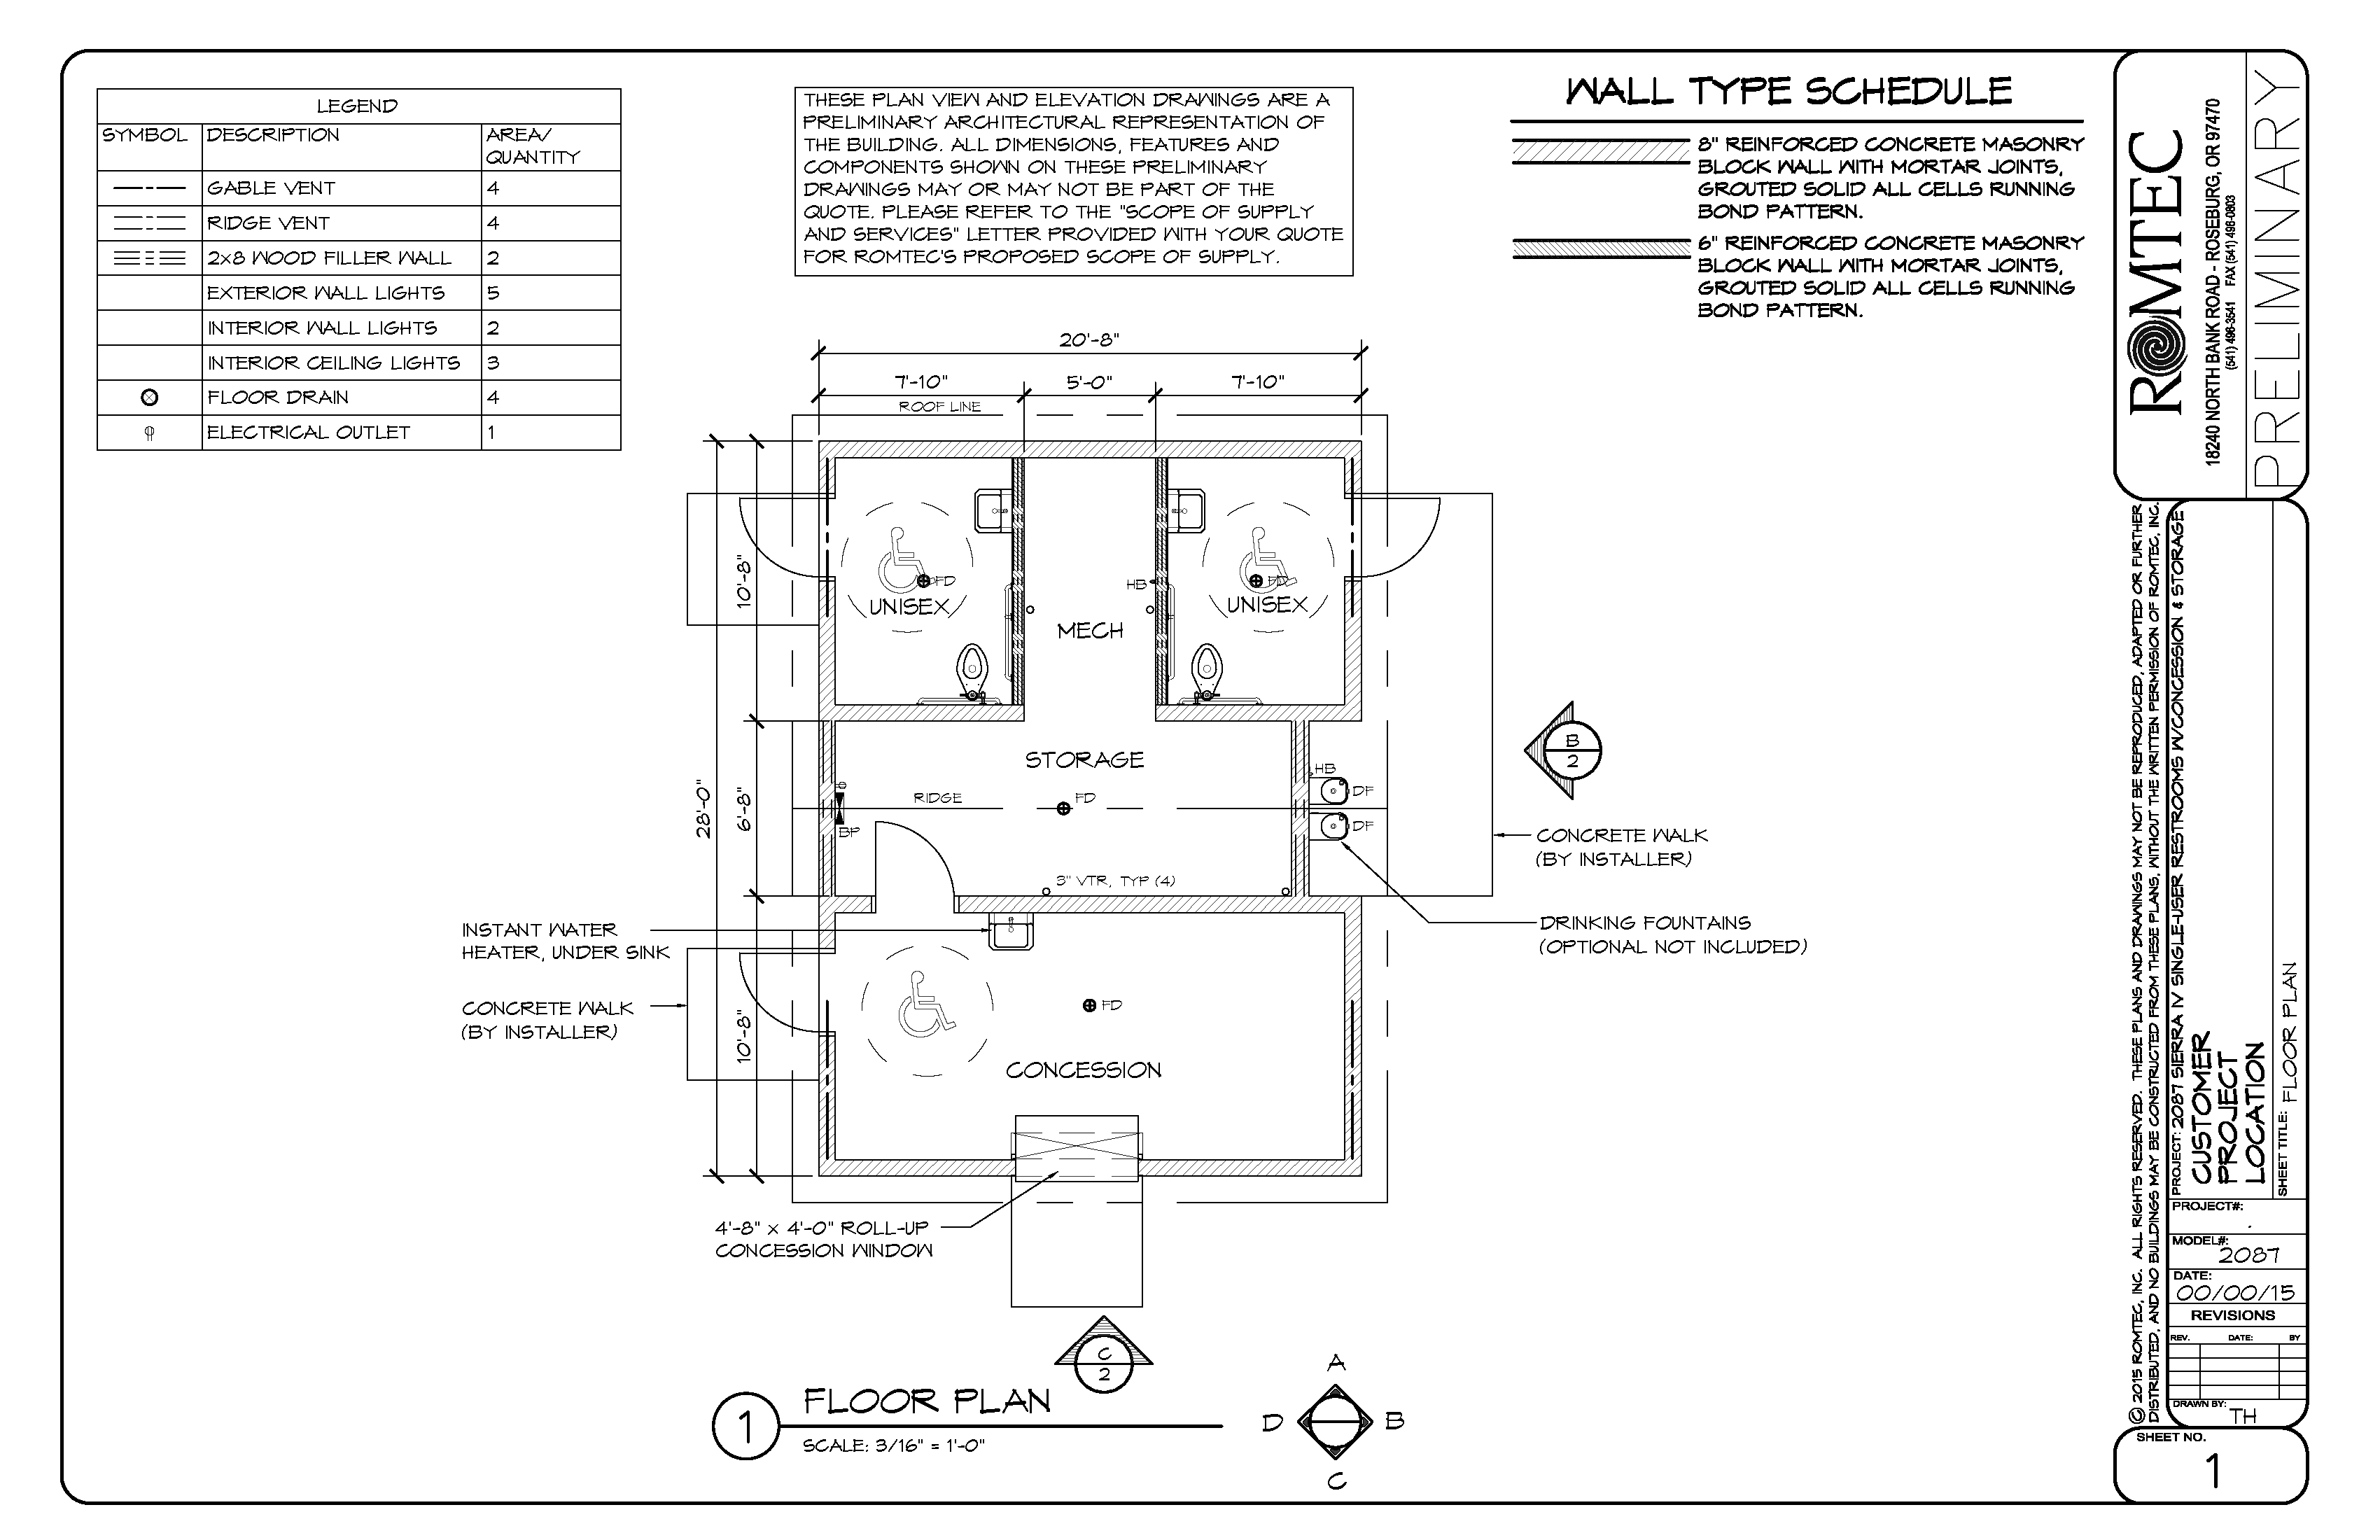 Large Concession Building Floor Plan Floor Plans Interior Wall Lights Concession